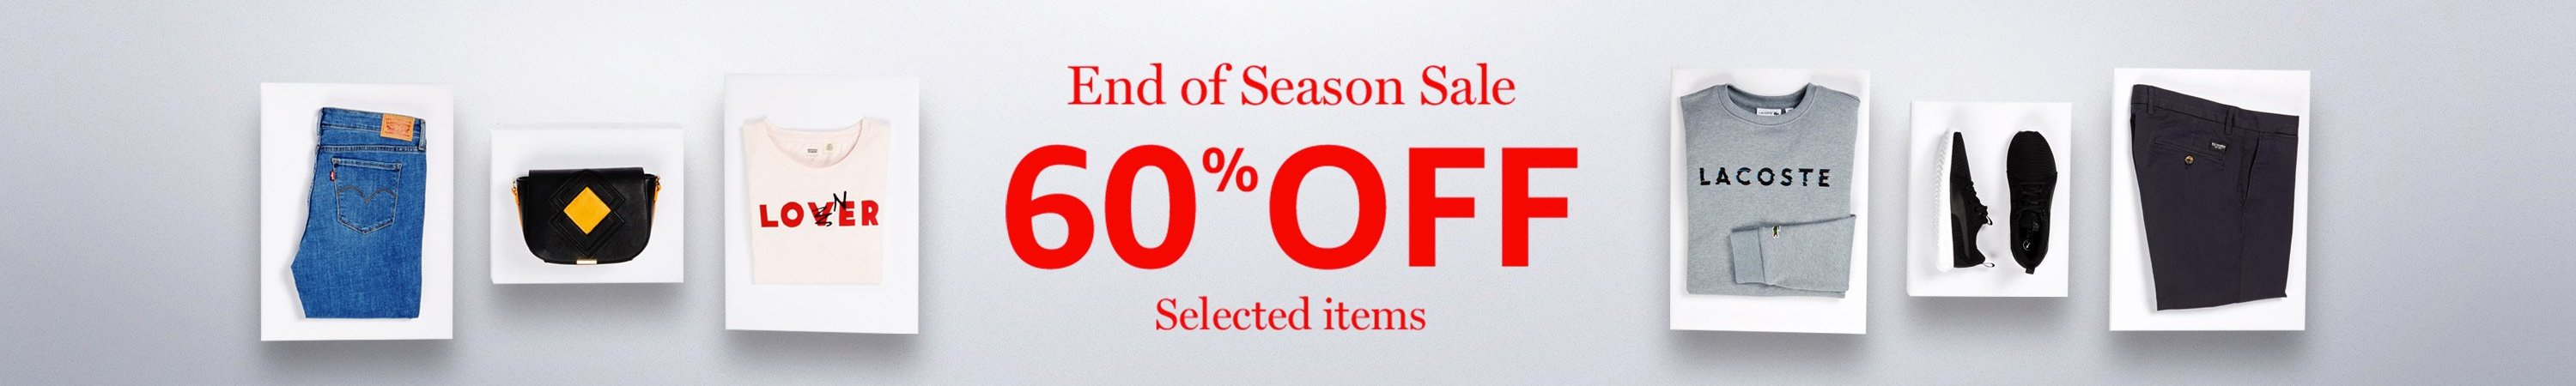 End of season Sale: 60% off selected items